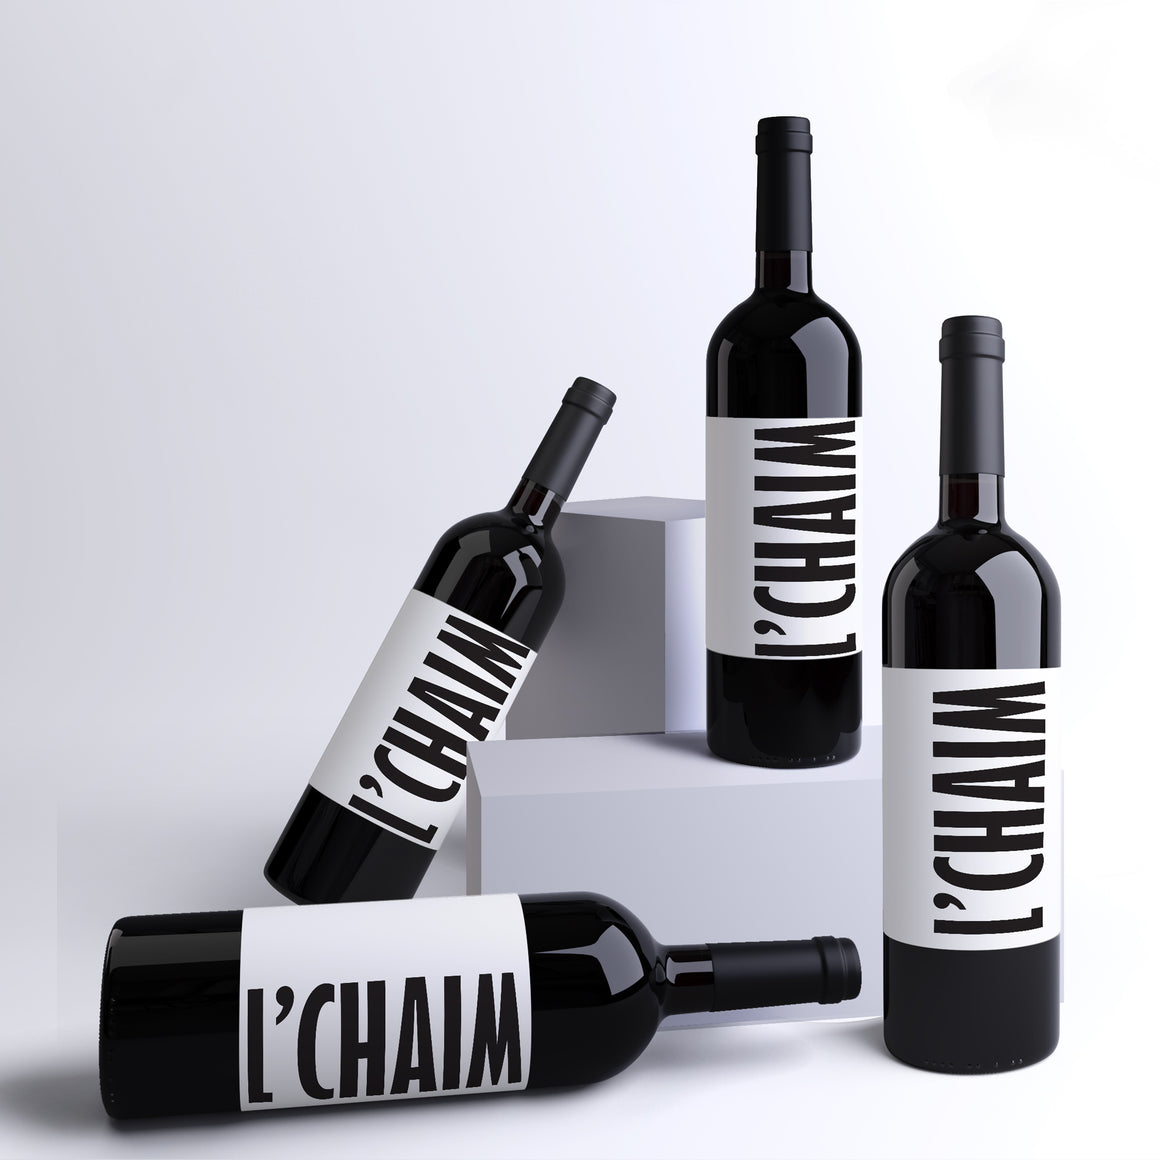 L'Chaim Wine Labels - 4 Pack